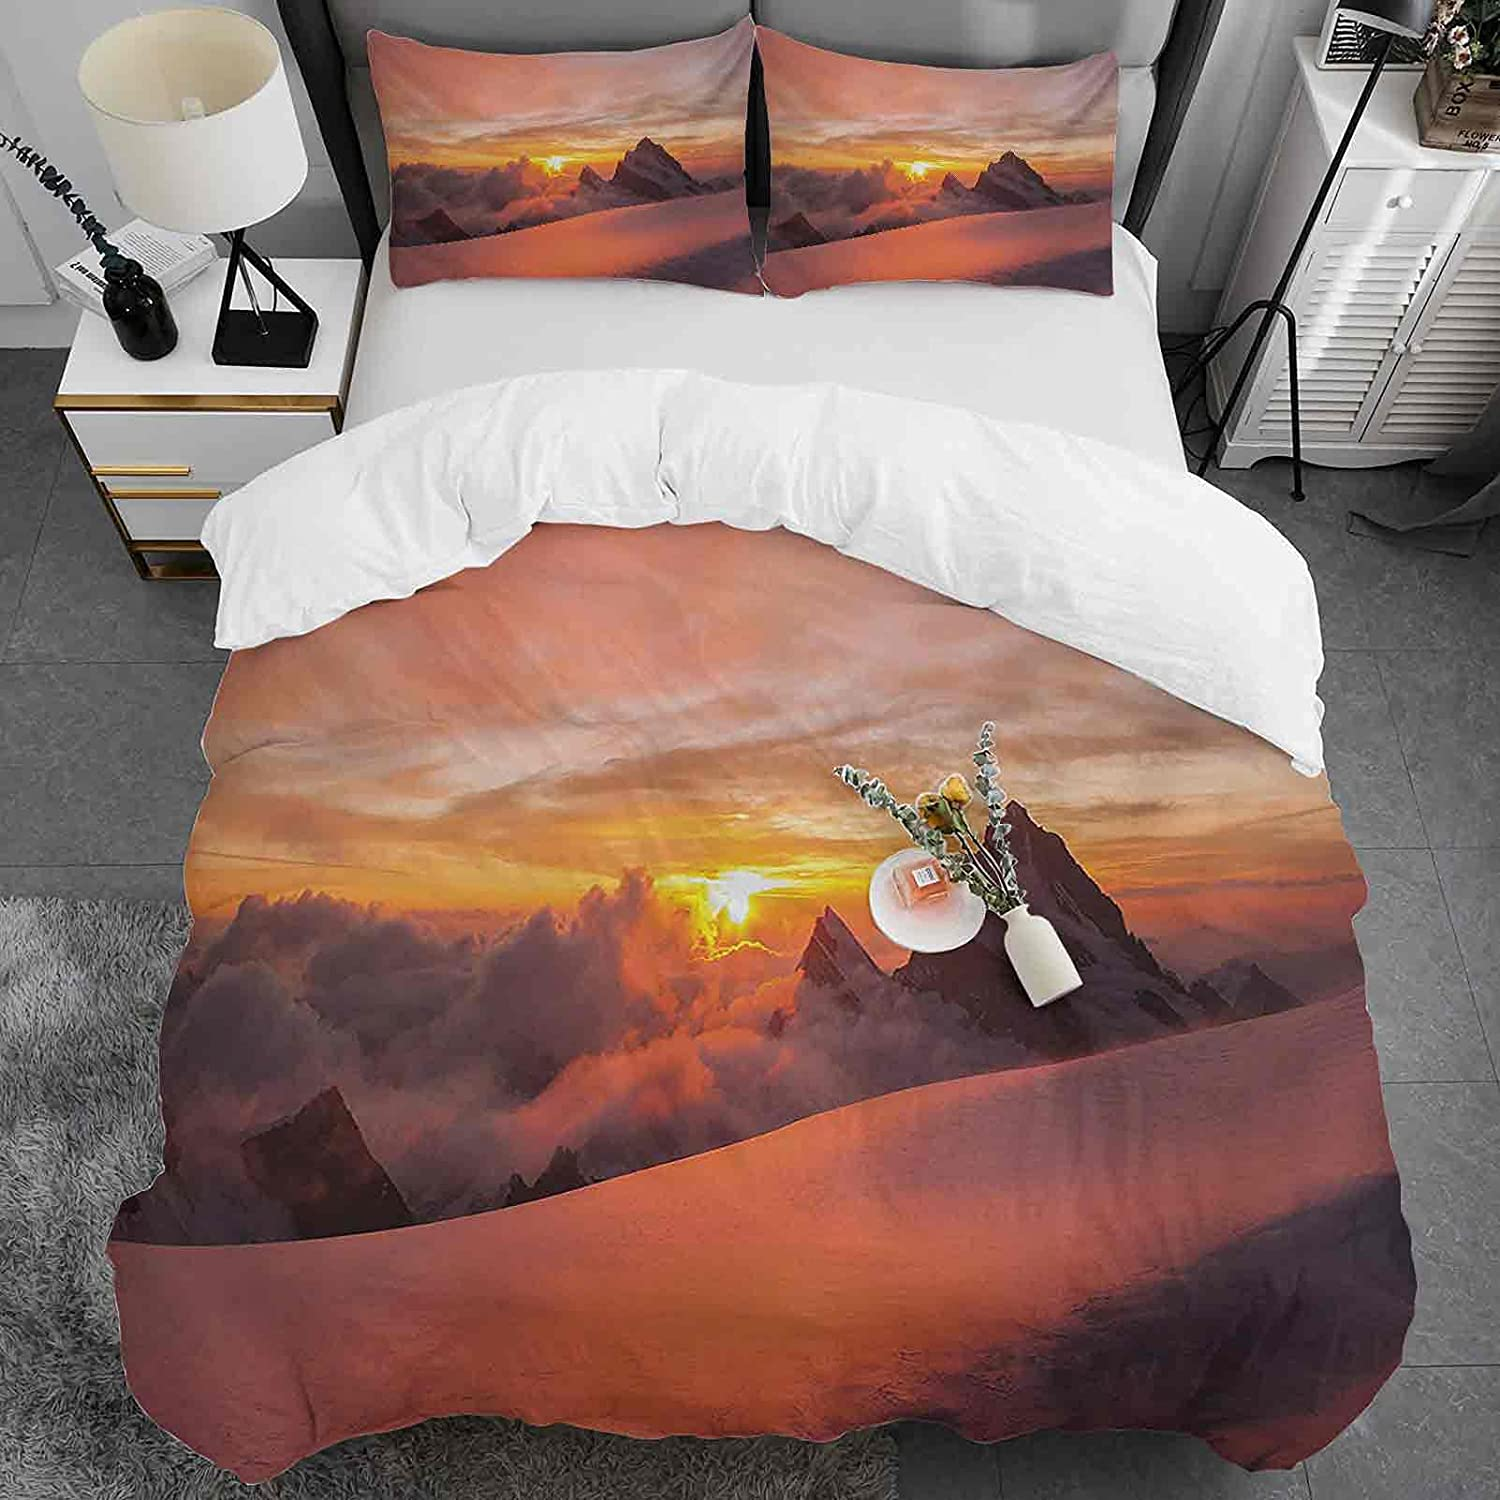 Mountain Duvet Cover Super-cheap Luxury goods Twin Size Sunrise Alps Swiss with in Magic